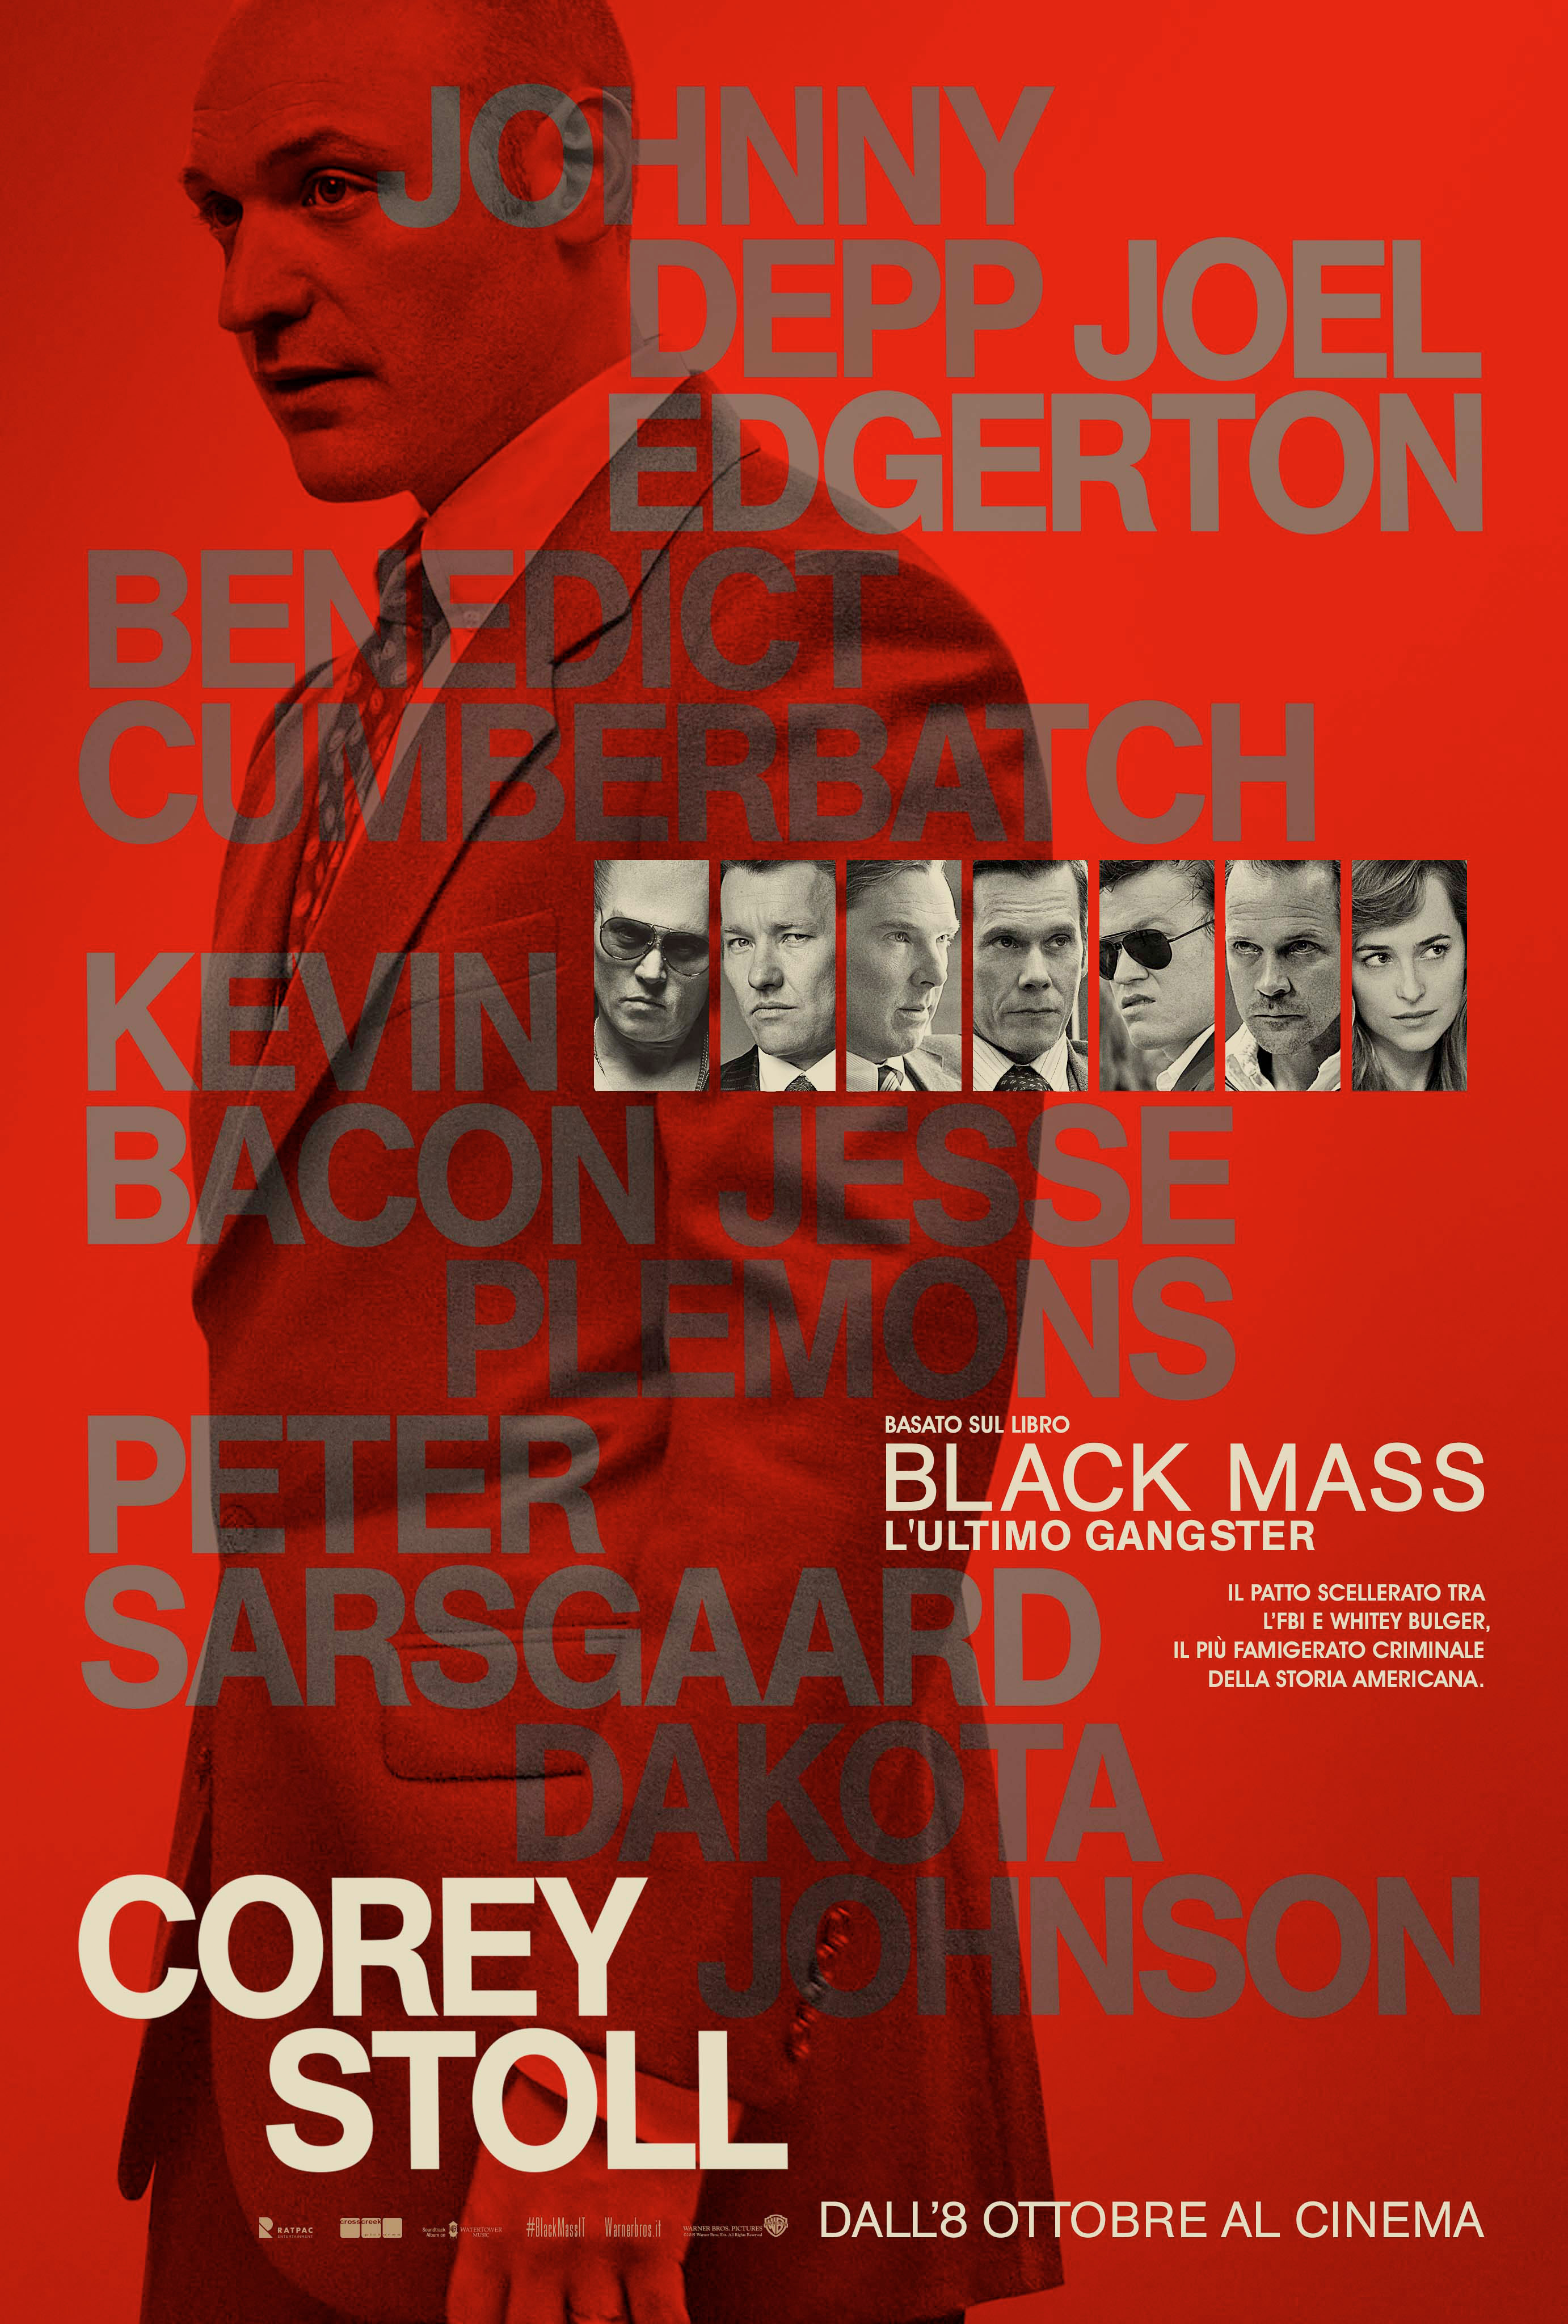 Black Mass - L'ultimo gangster: il character poster di Corey Stoll